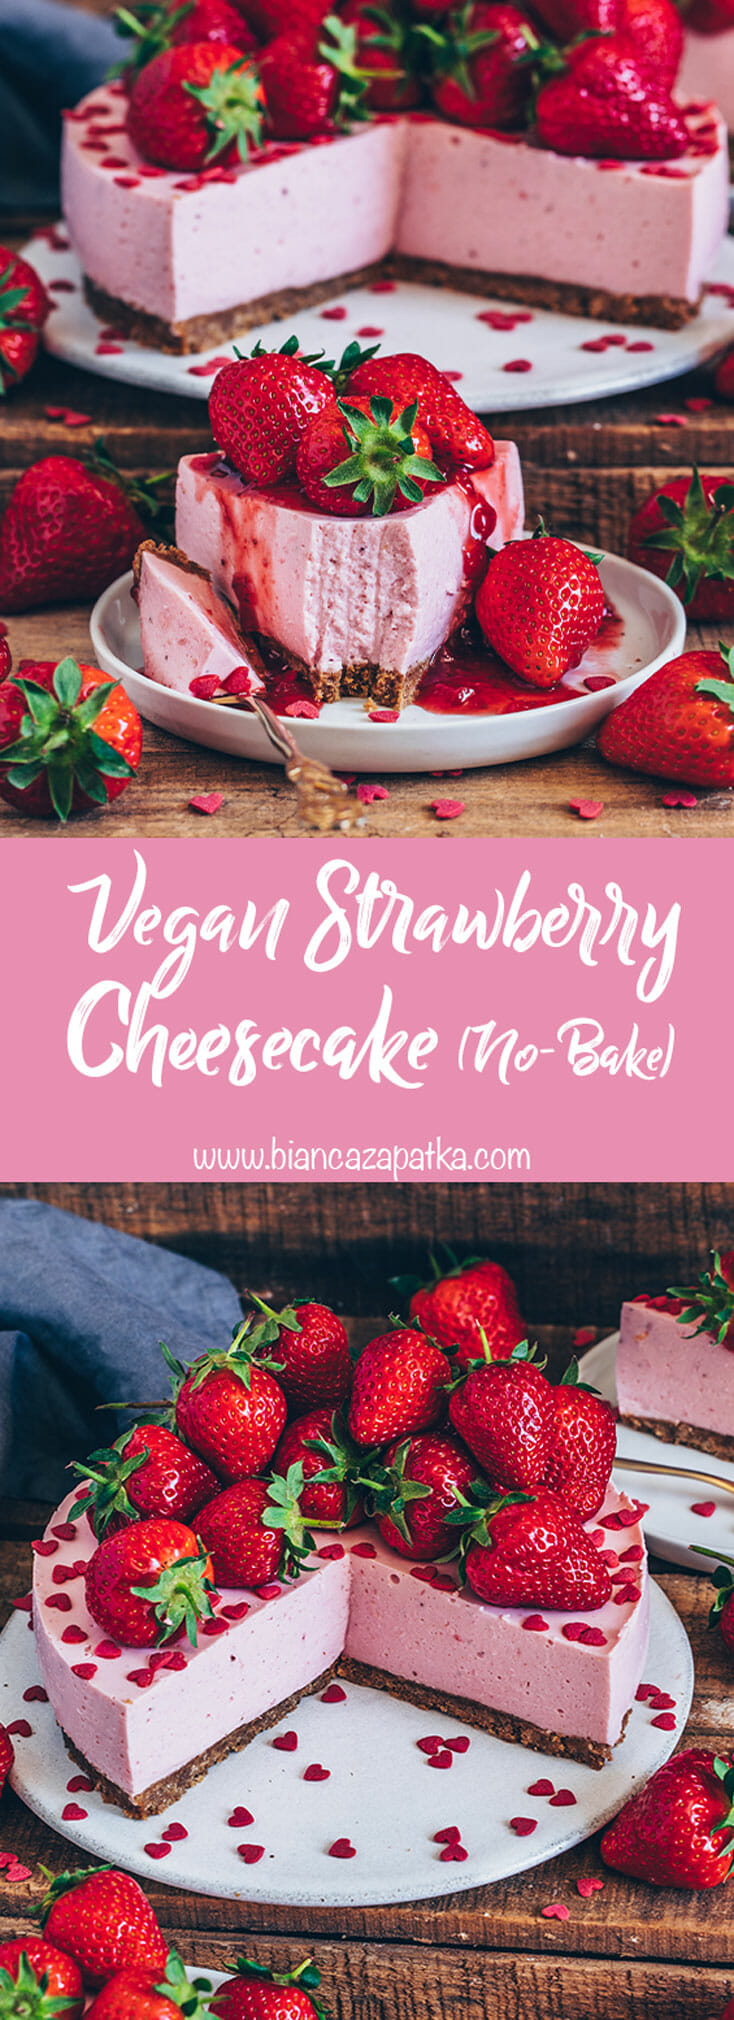 Strawberry Cheesecake (Vegan no-bake yogurt pie)